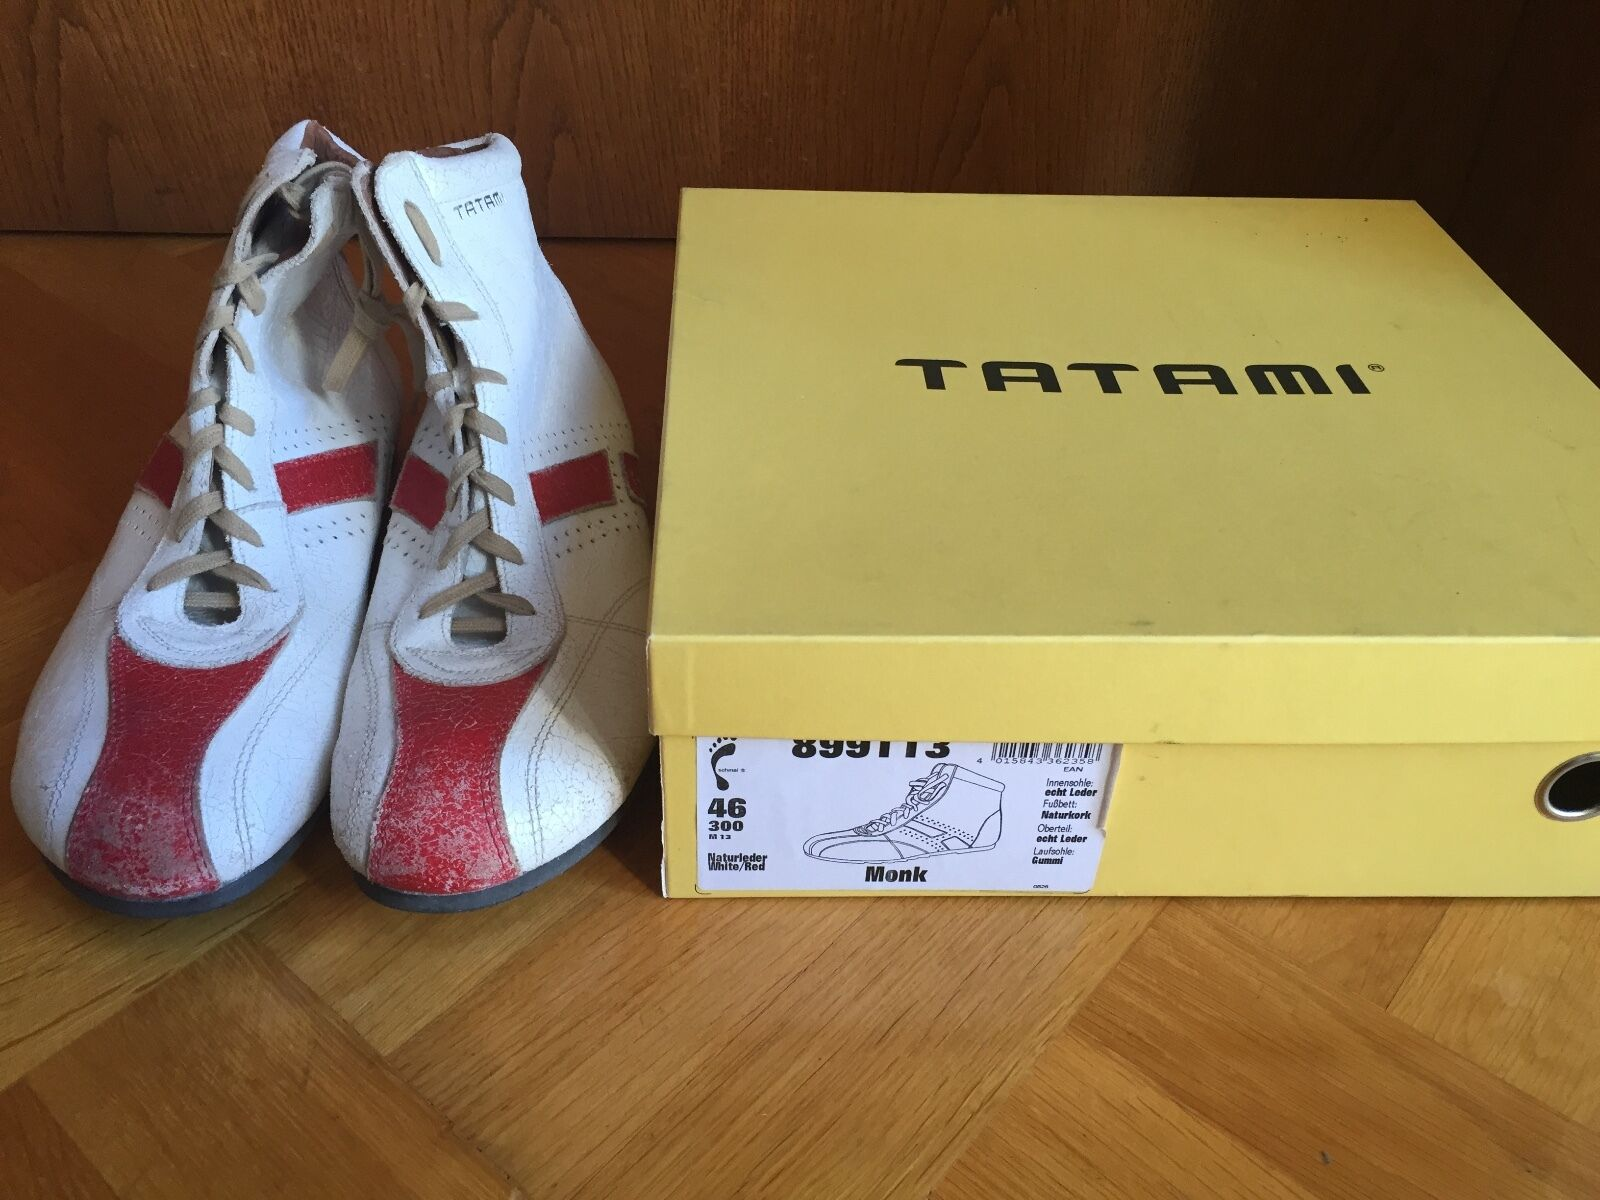 Scarpe casual da uomo  TATAMI SHOES MONK BOXER BOOTS LEATHER WHITE/RED EUR 46 300 US 12.5